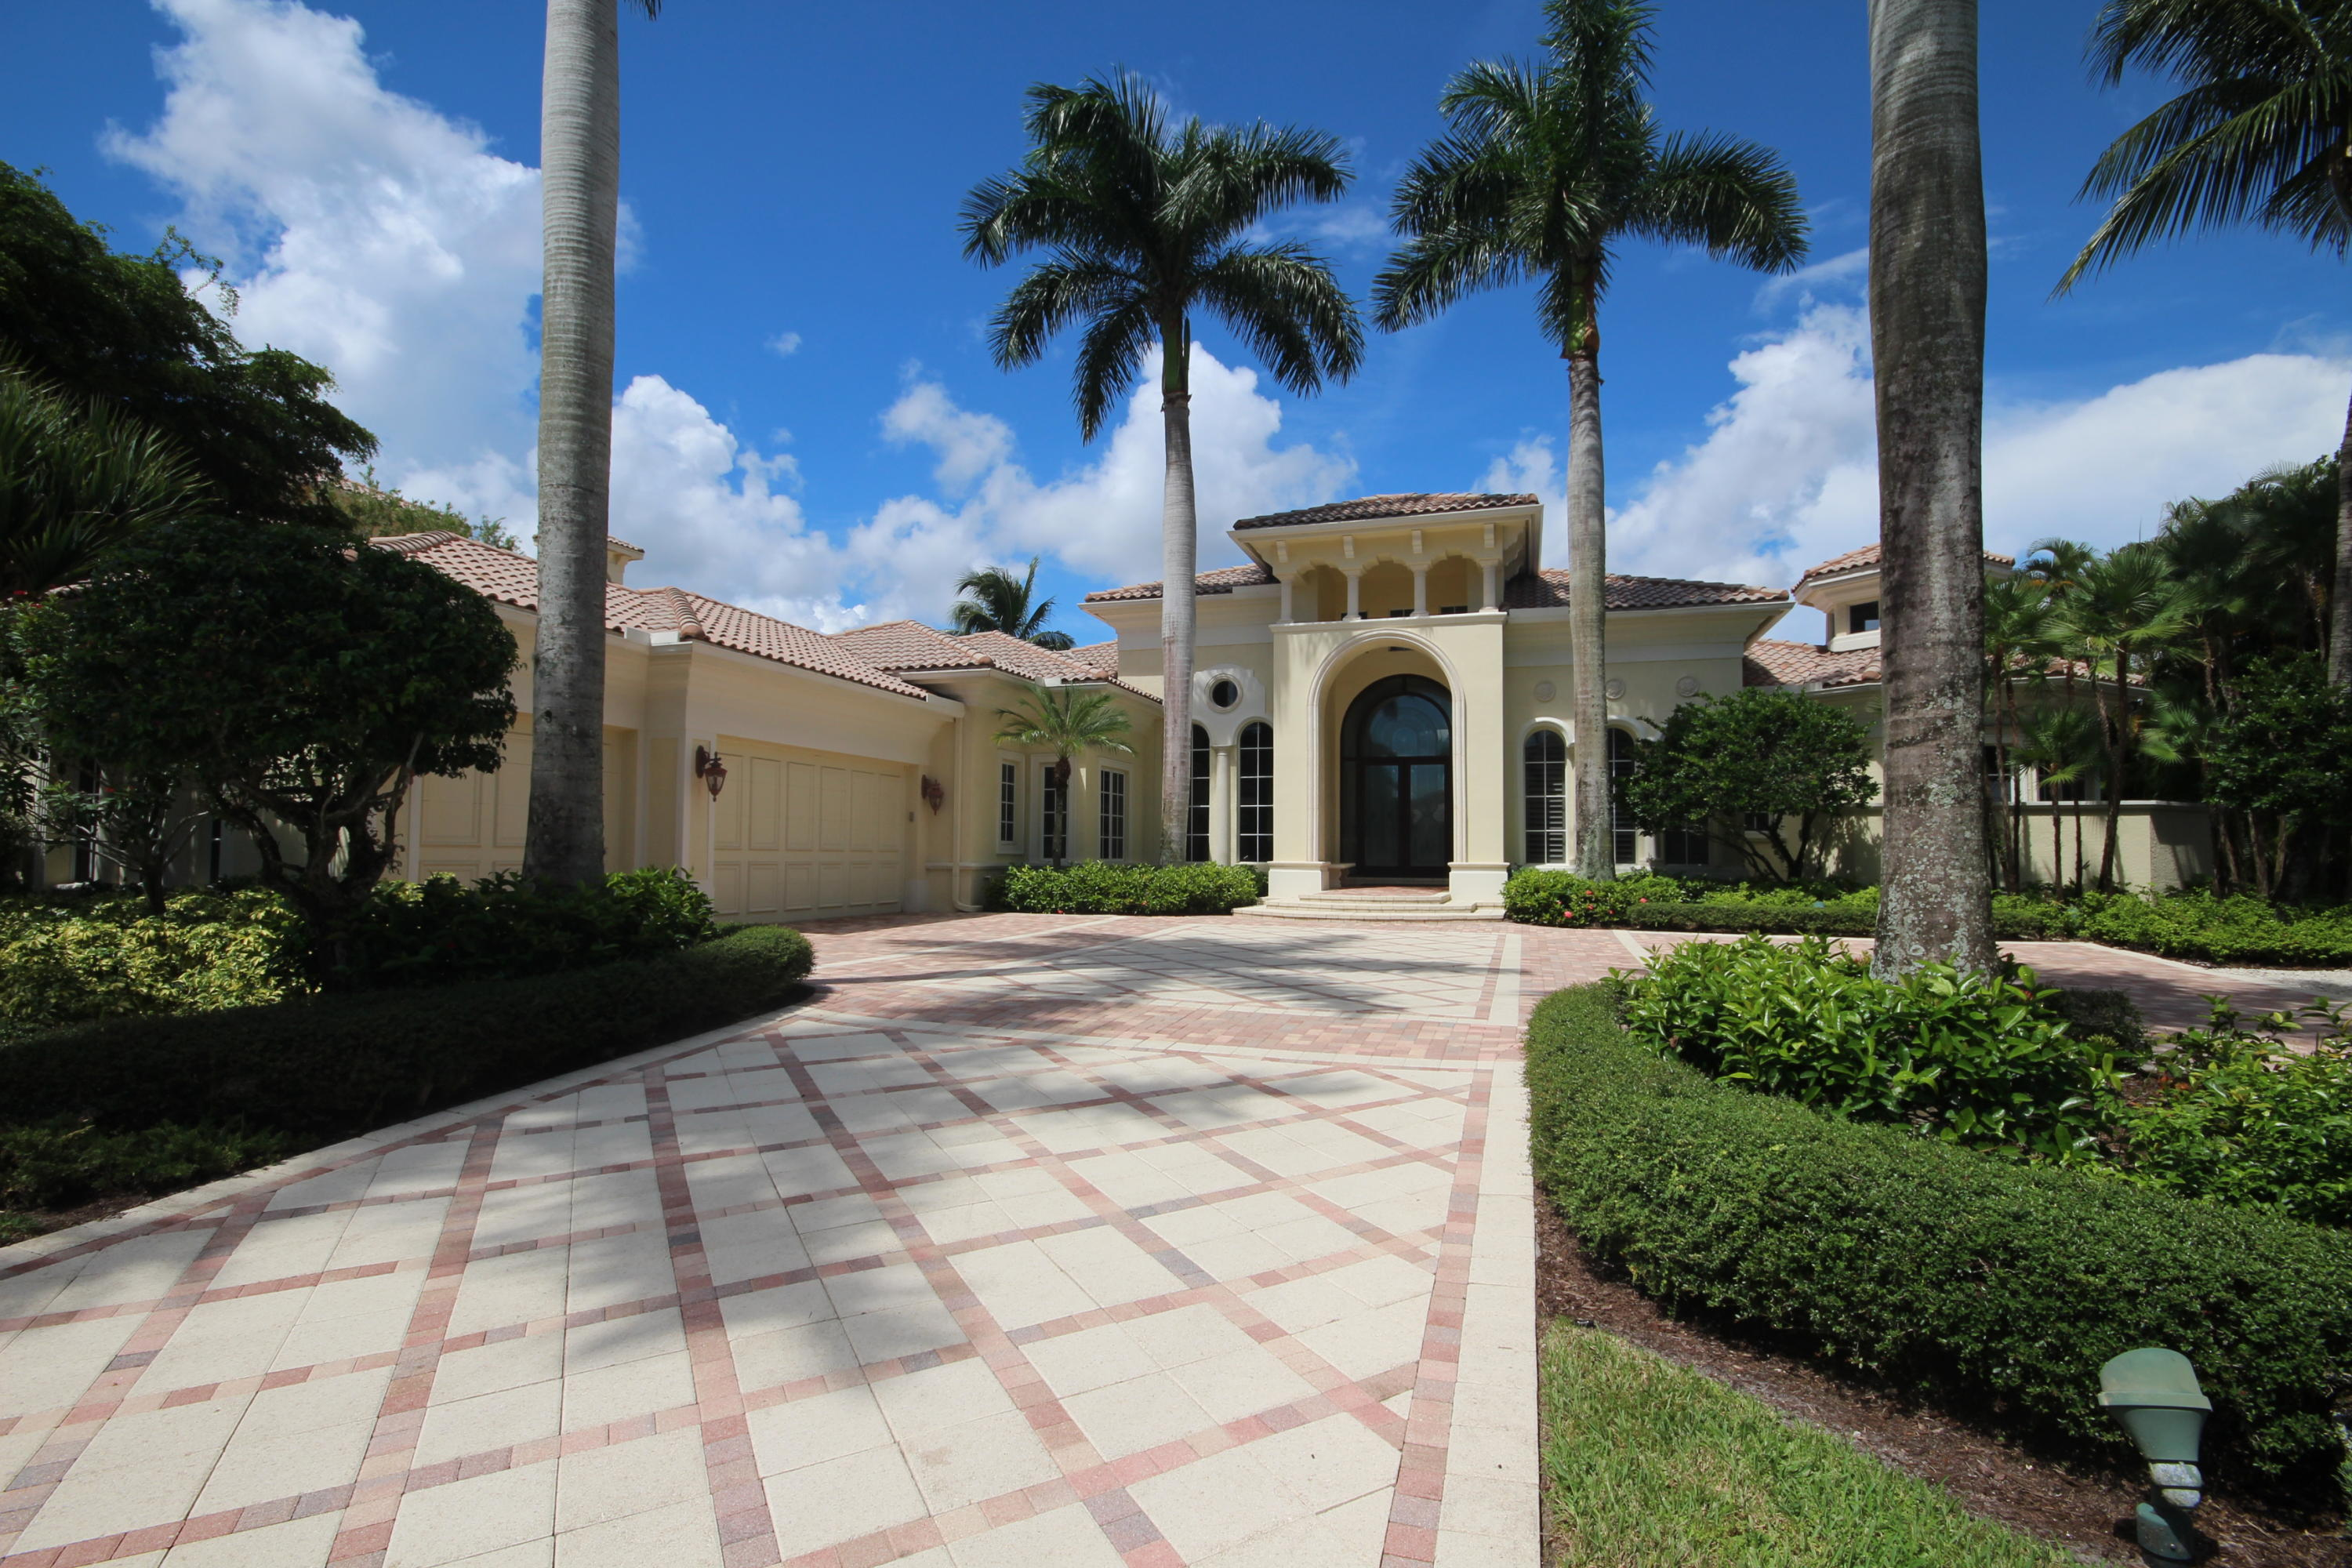 Updated 5 Bedroom, plus office, 4705 square feet under air, all windows protected by film or accordion shutters, golf membership home in prestigious Addison Reserve Country Club. This home also features marble flooring, heated pool & spa and a full house generator. This house is priced to sell.